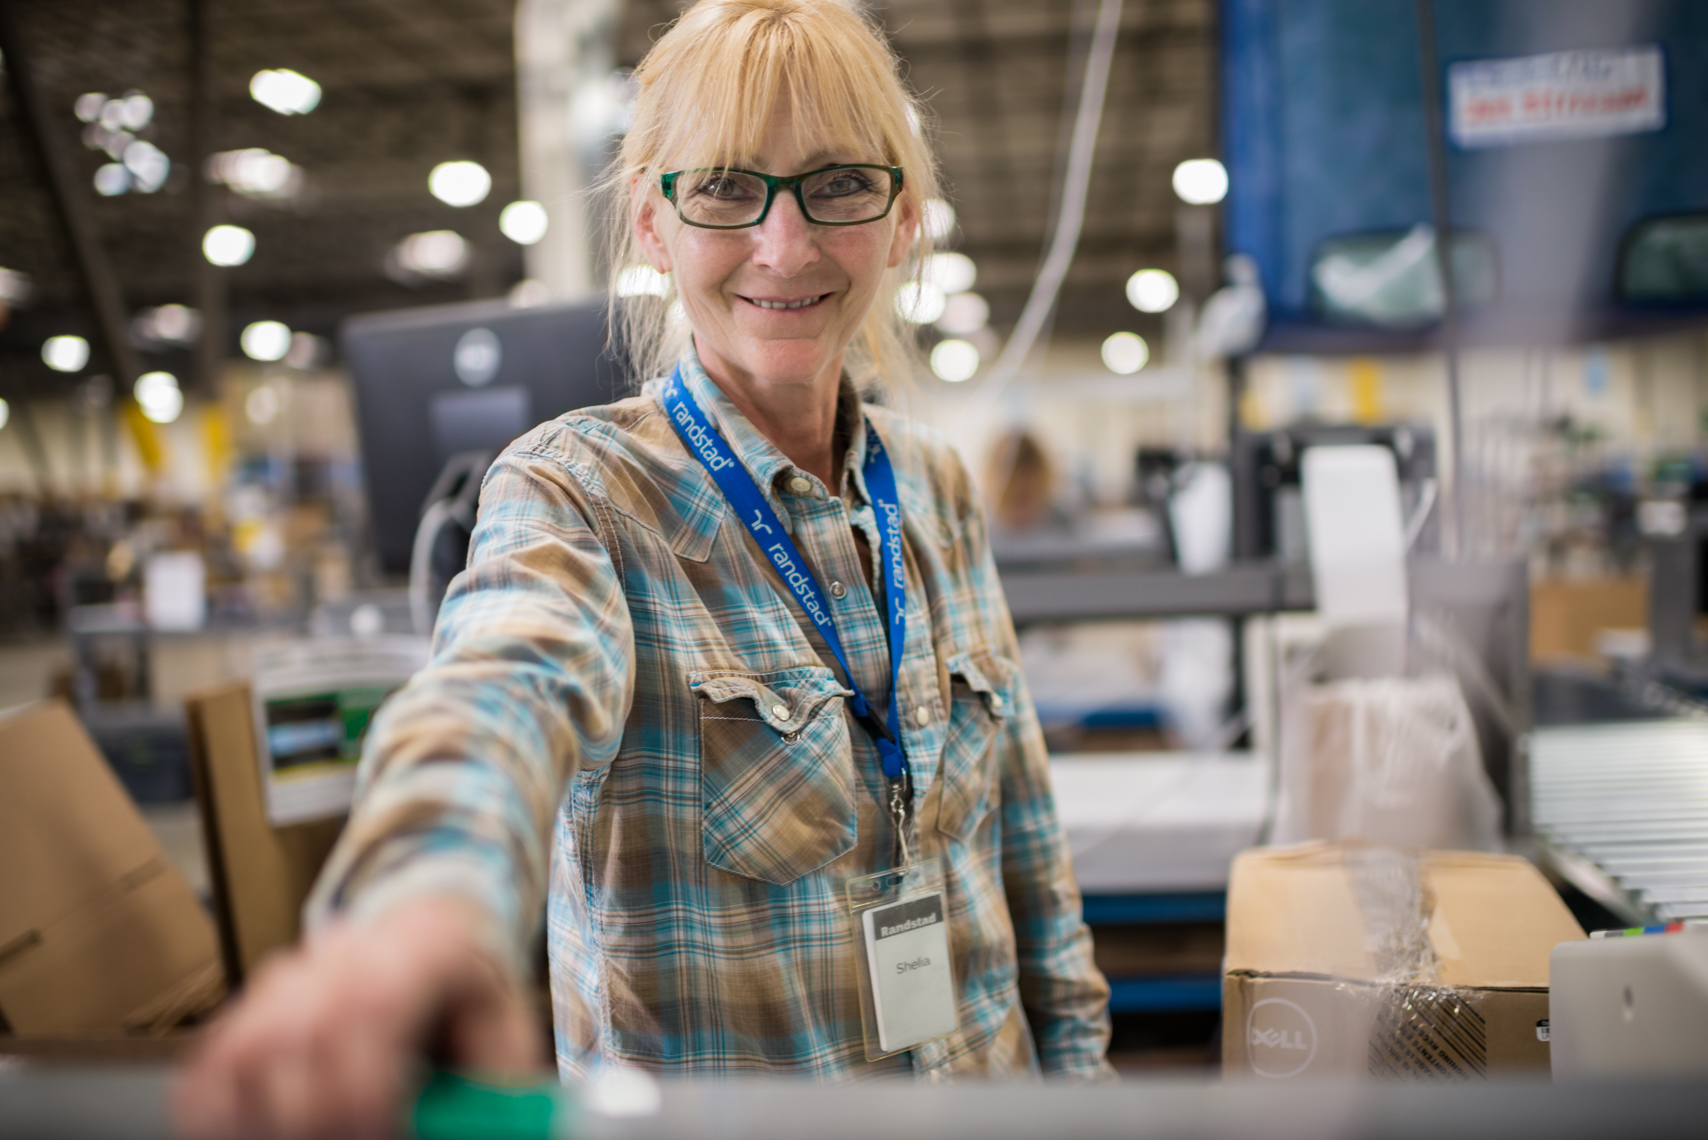 Woman working in the Optoro Warehouse in Mount Juliet, TN. Packaging, portrait, women, golden years, lifestyle, journalism, distribution center, commercial photography.